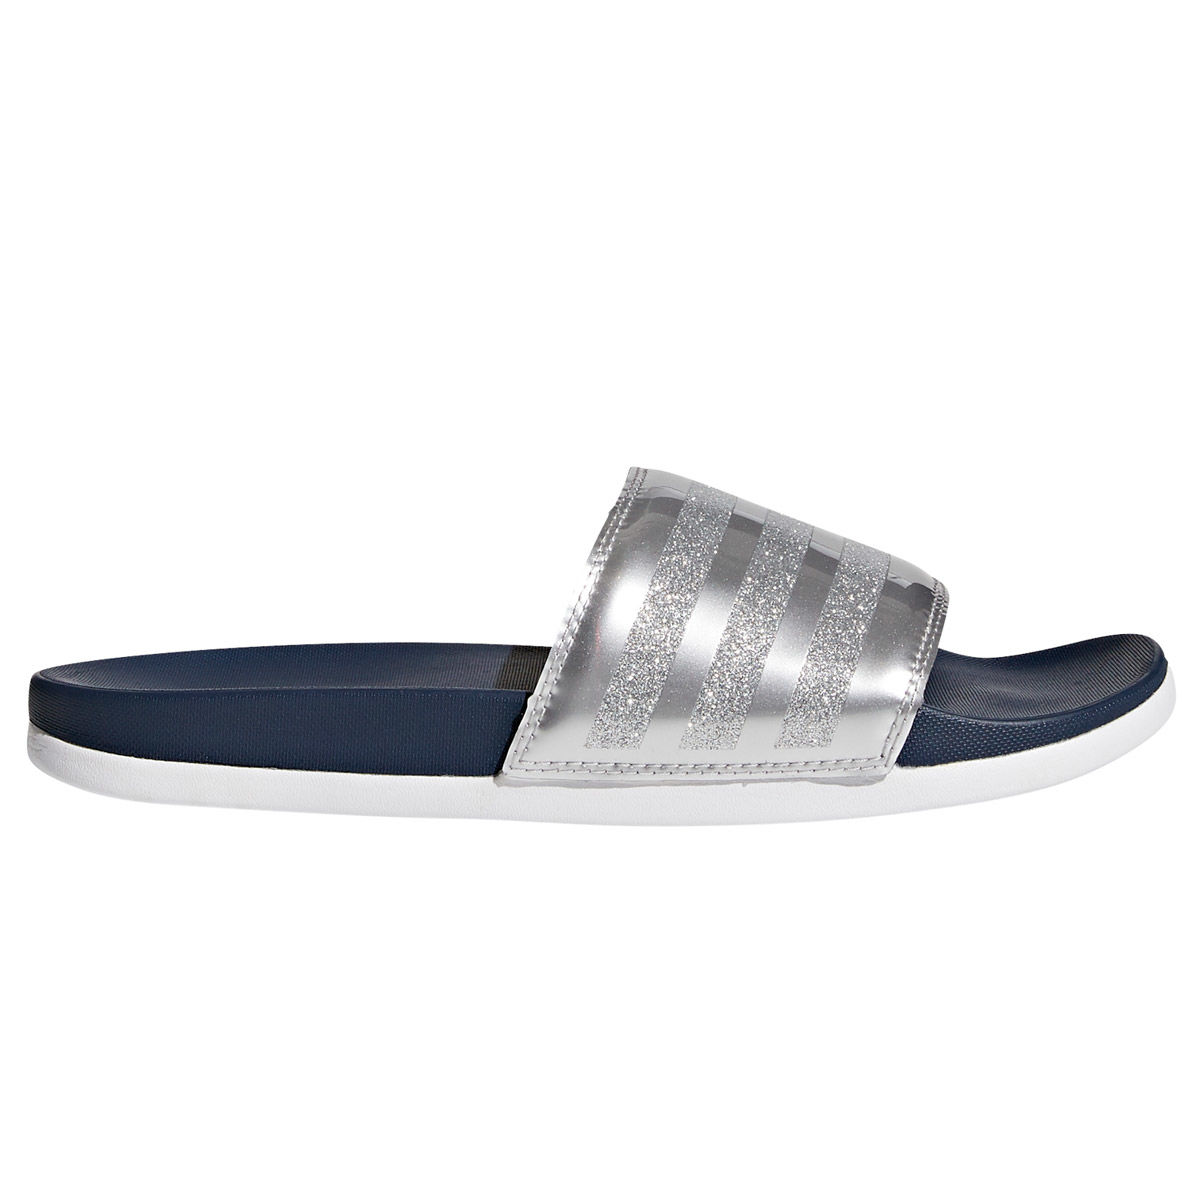 adidas Adilette Cloudfoam Plus Explorer Womens Slide